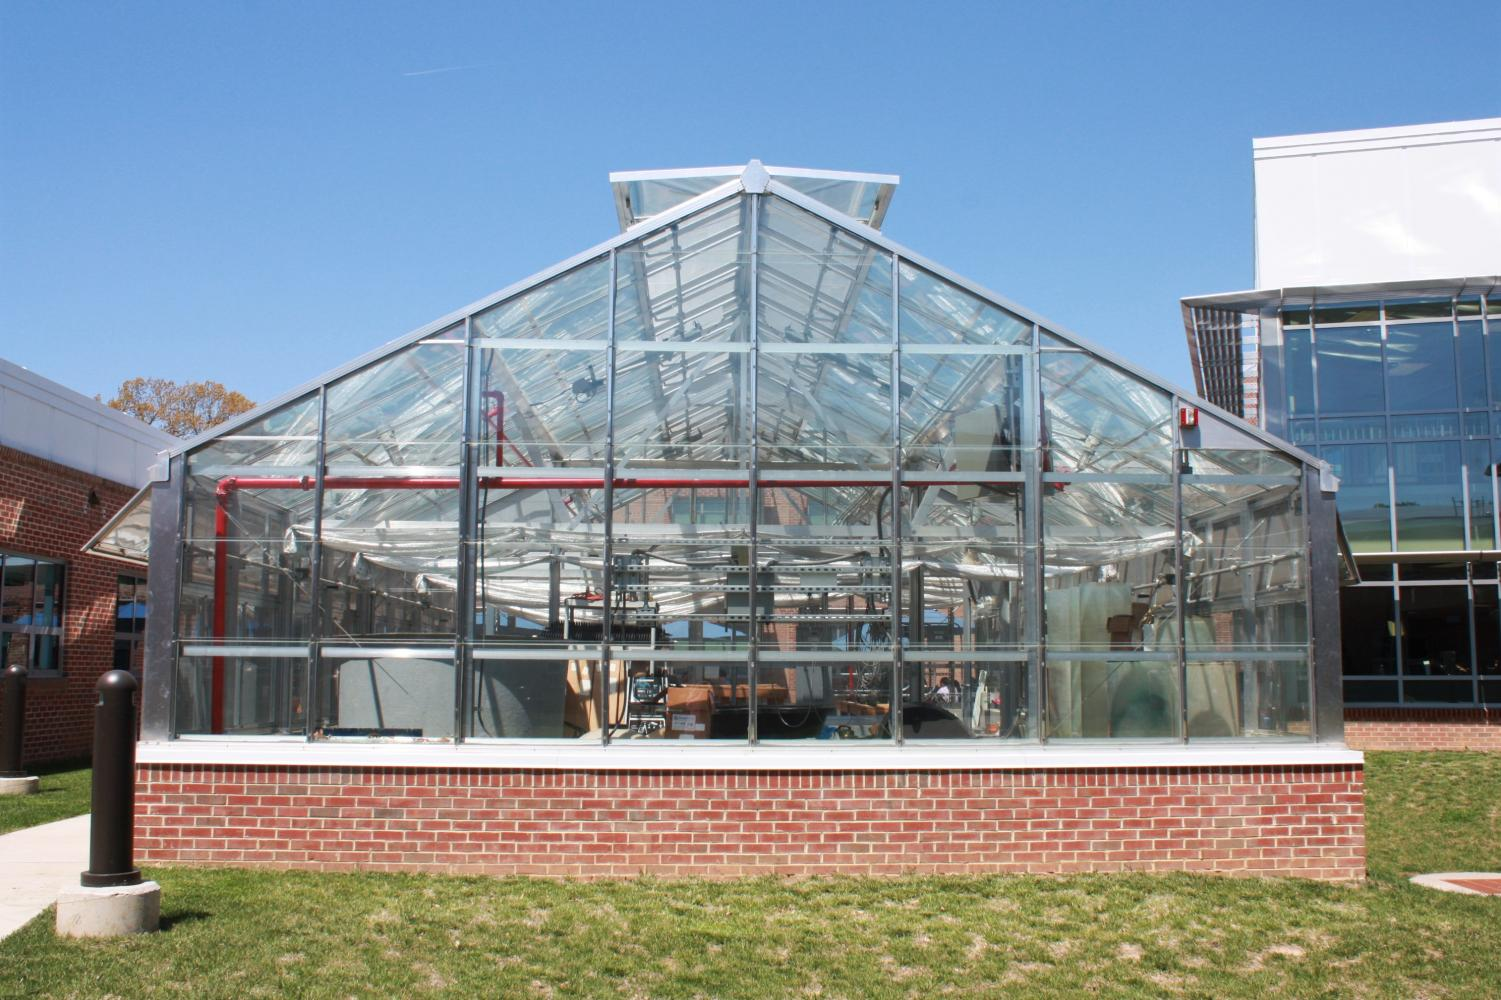 The academic research side of the greenhouse is soon to go under construction. In addition to air conditioning, shelving and systems for aquaculture will be installed.